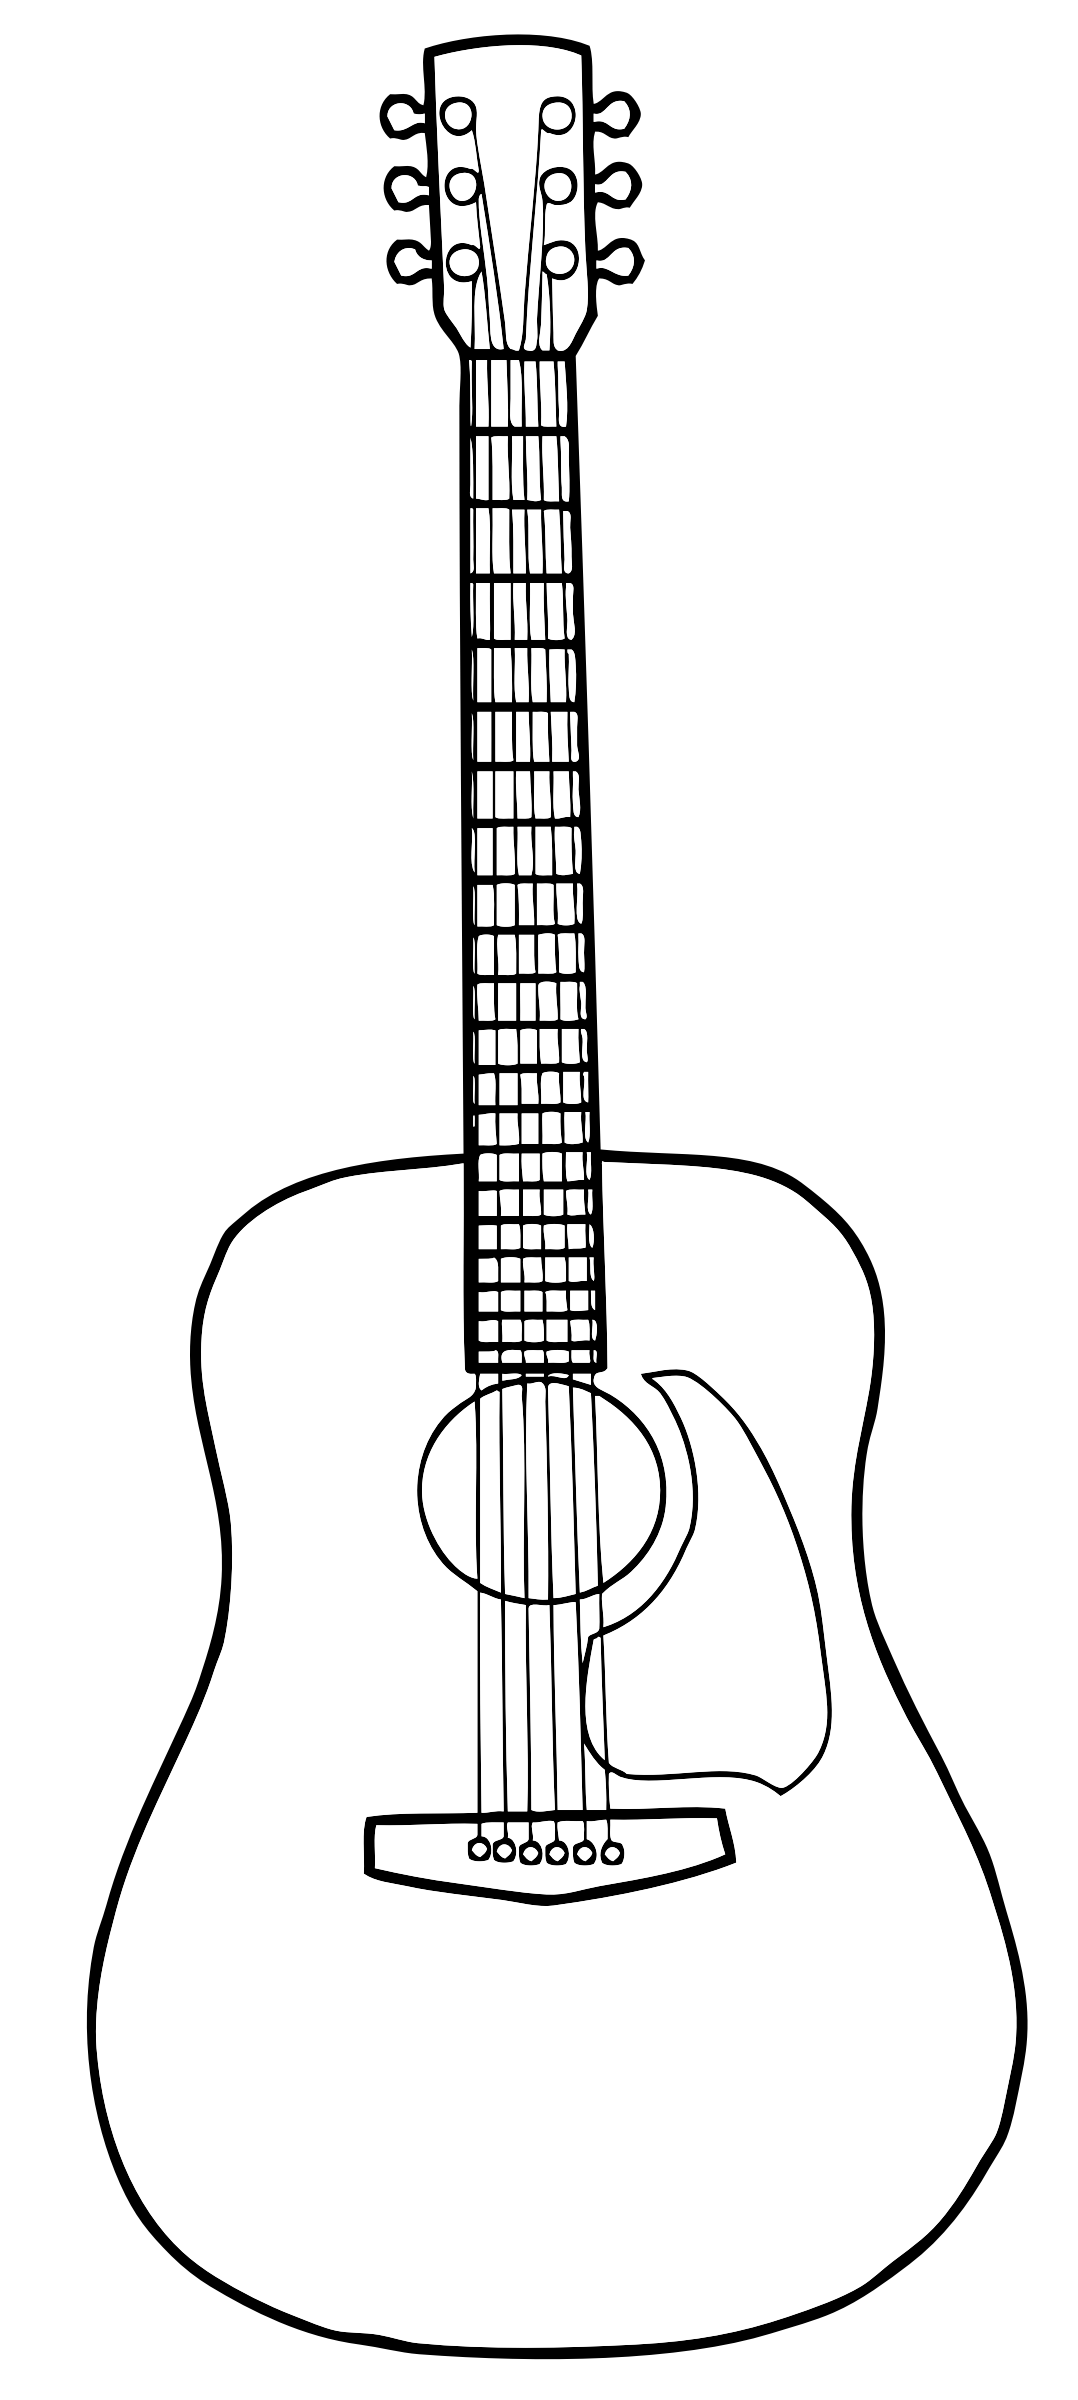 guitar outline clipart